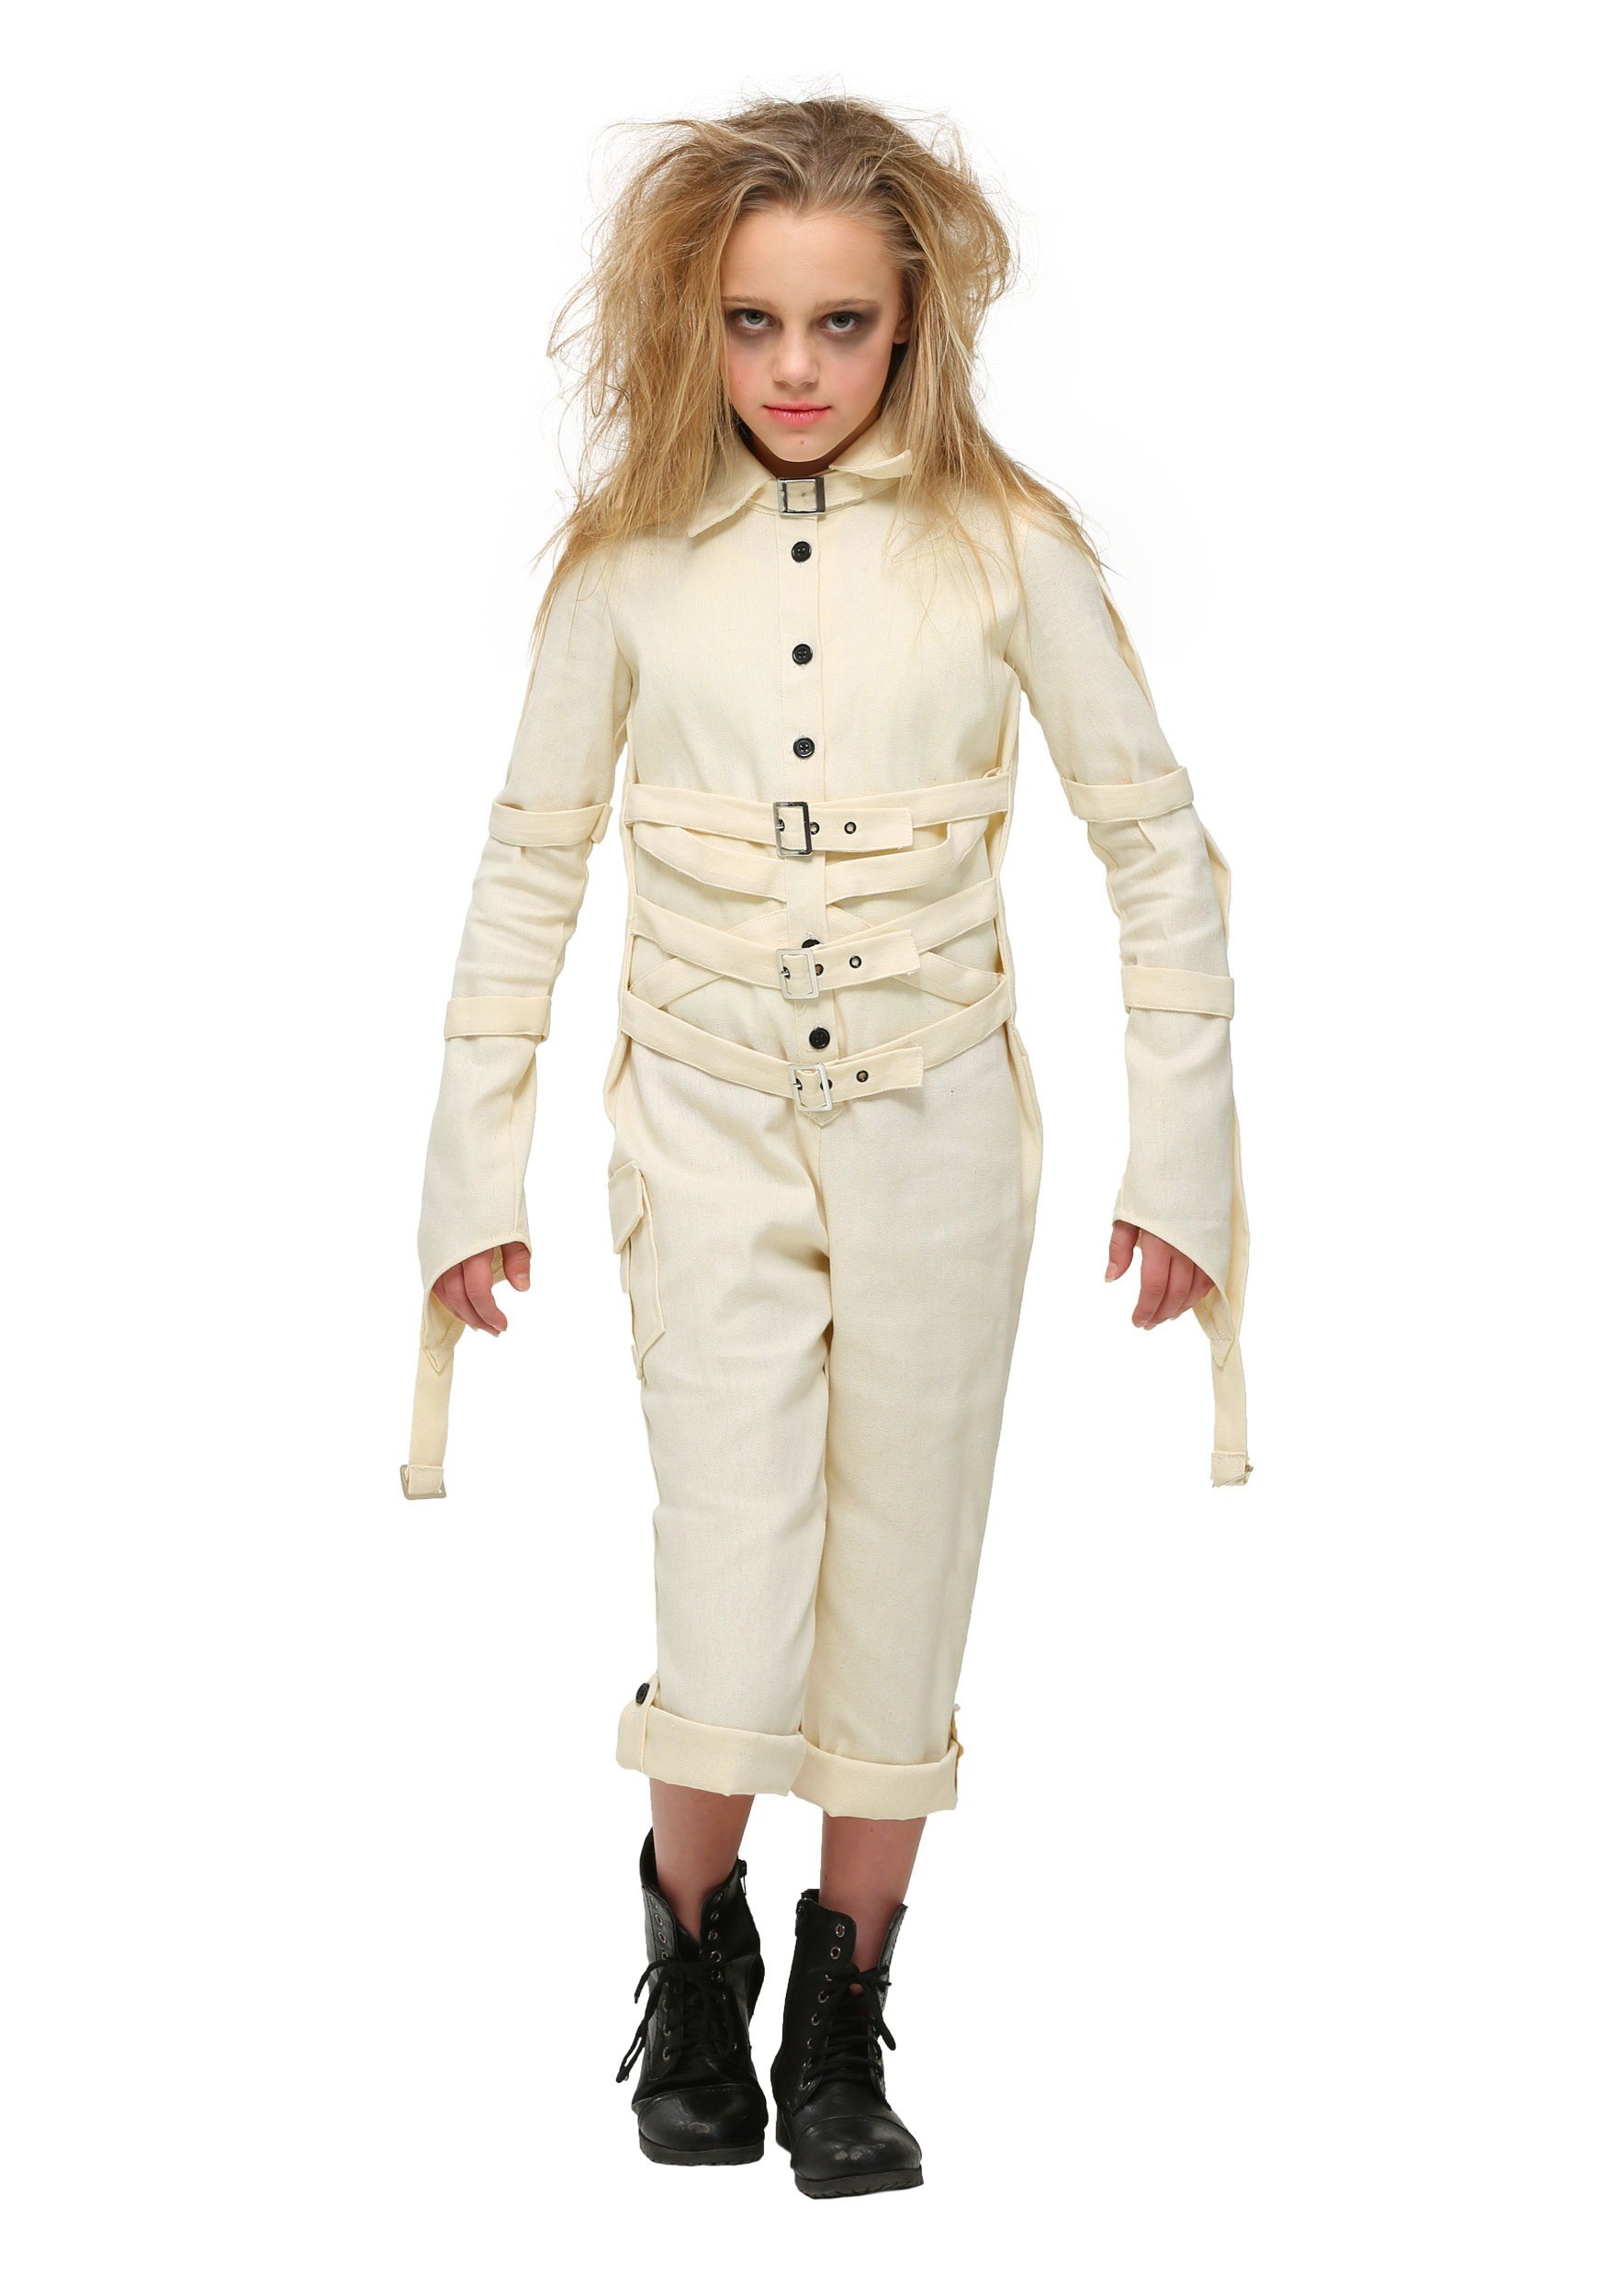 save off ccdd5 2a497 Girl s Insane Asylum Costume